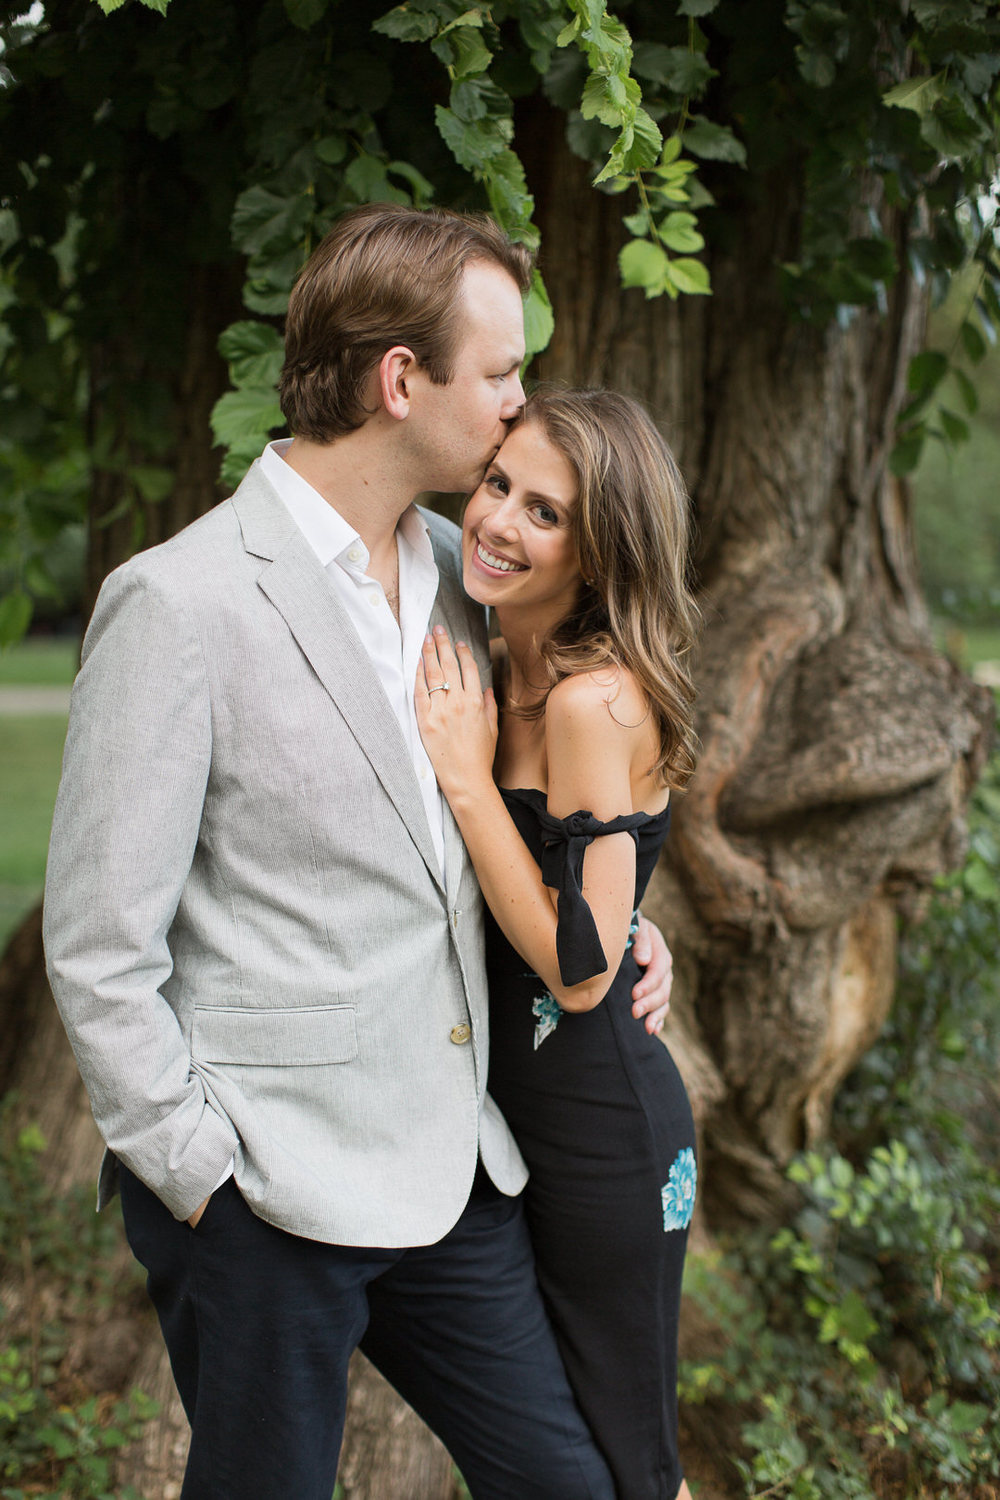 Melissa Kruse Photography - Meghan & Pete Engagement Photos-156.jpg